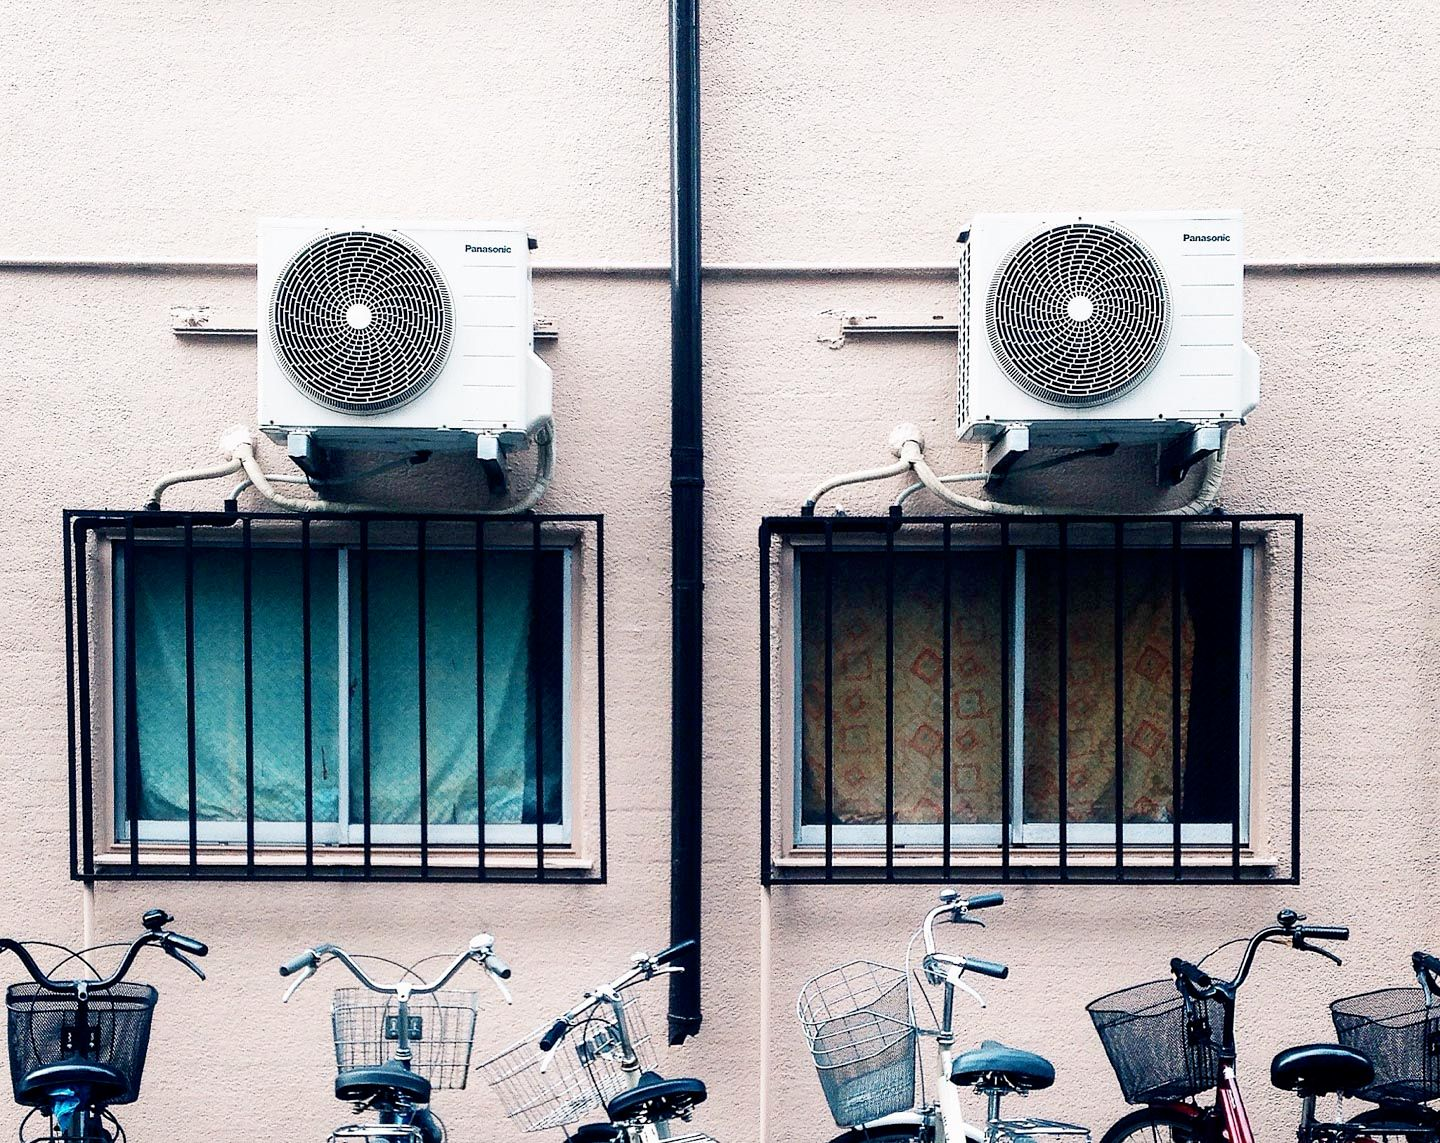 AC units in apartment/shared housing